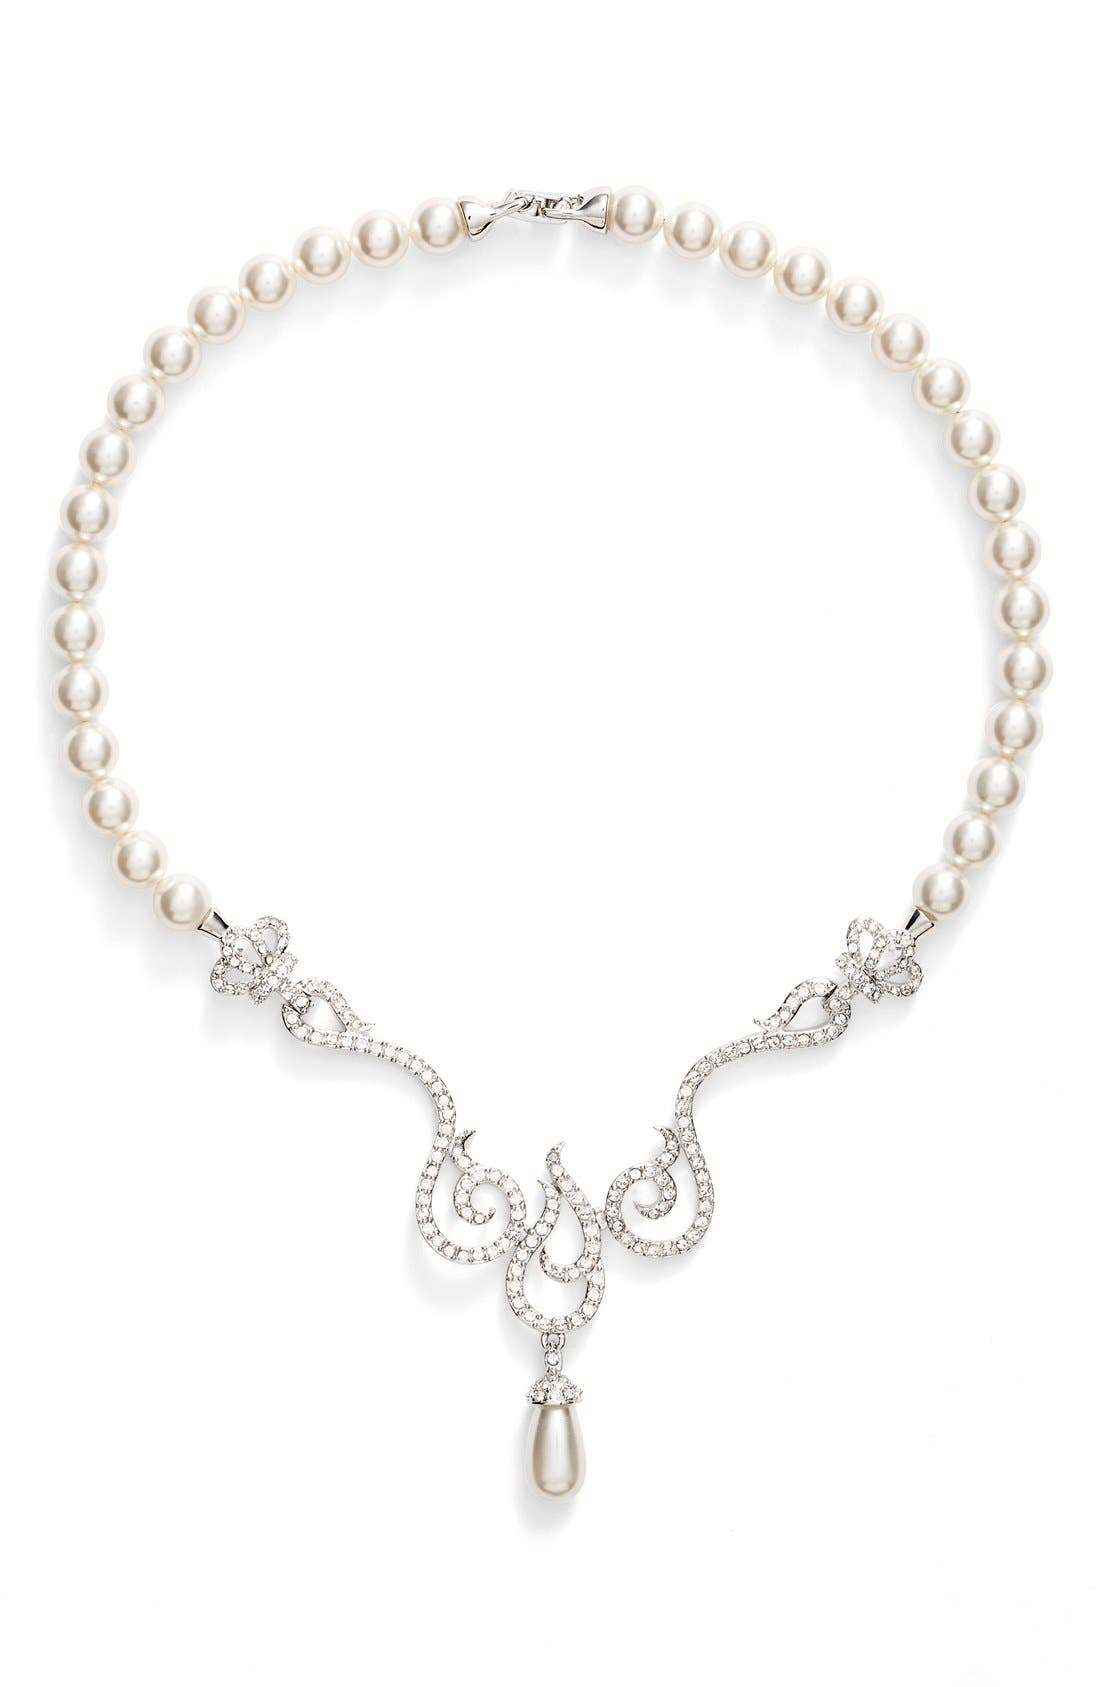 Nina 'Romantic' Swarovski Crystal & Faux Pearl Frontal Necklace